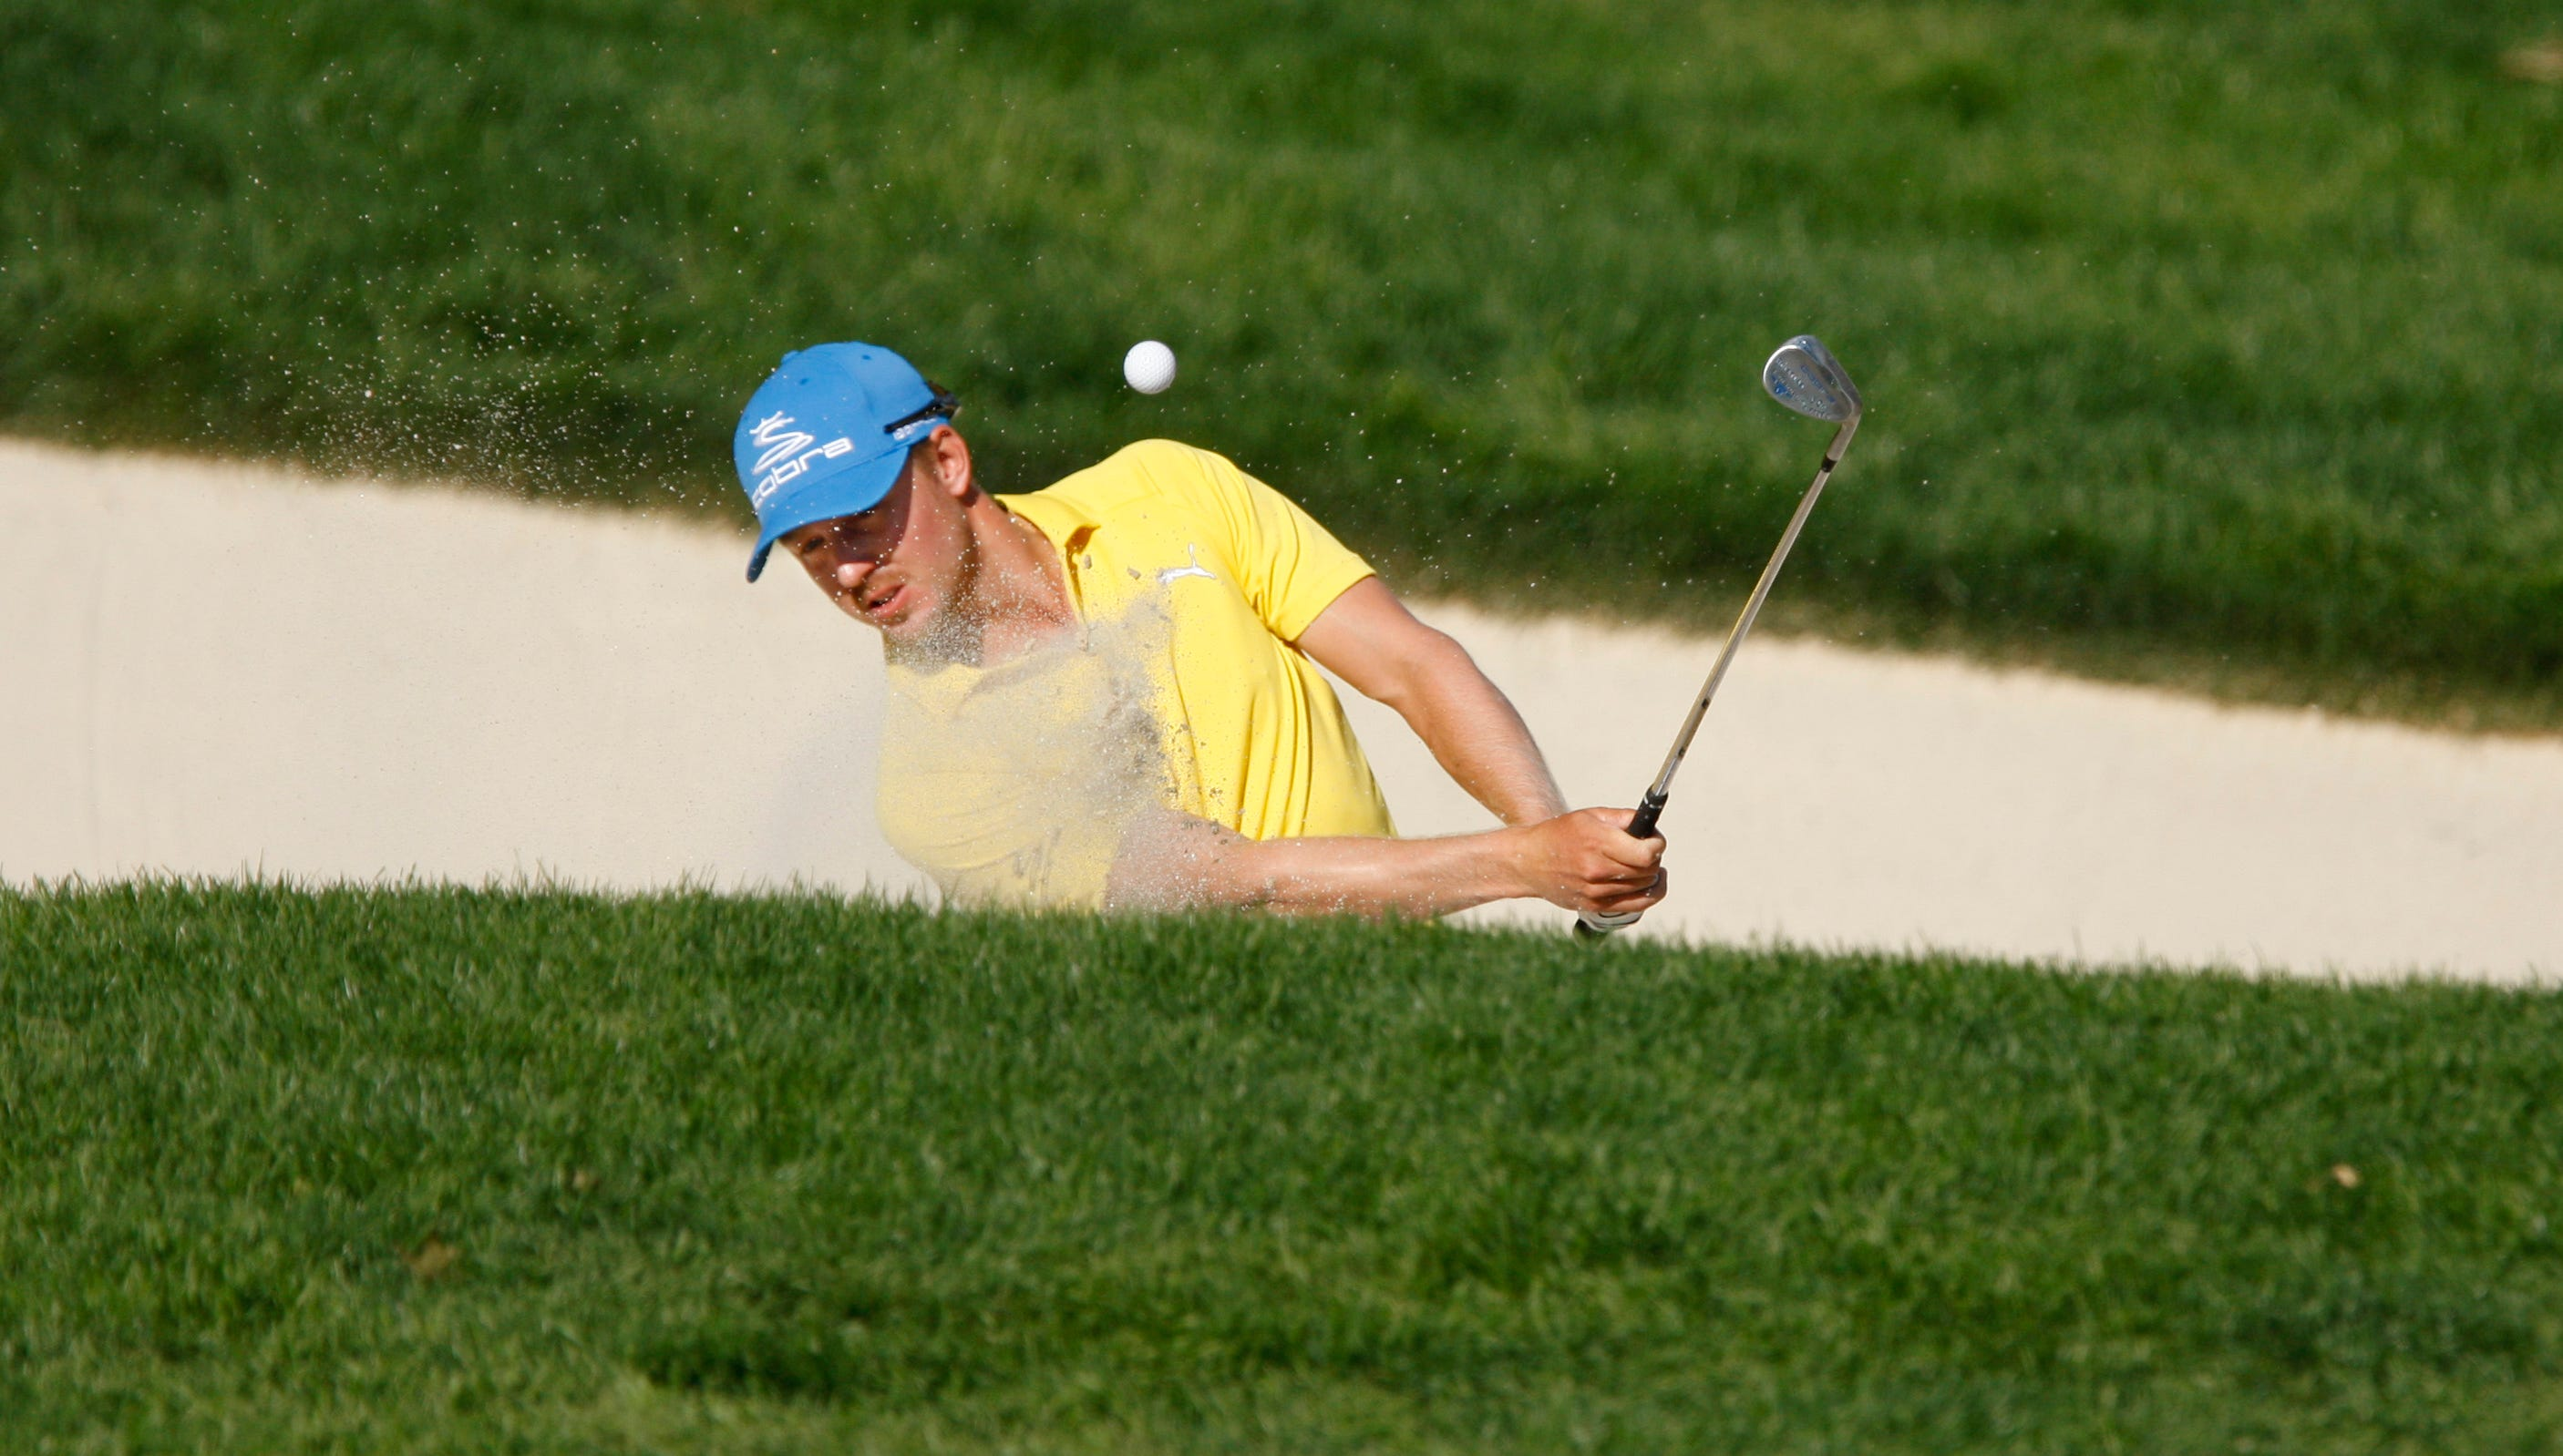 Jonas Blixt hits out of a bunker on the 17th during the final round of the 95th PGA Championship Sunday, Aug. 11, 2013 at Oak Hill Country Club in Pittsford.